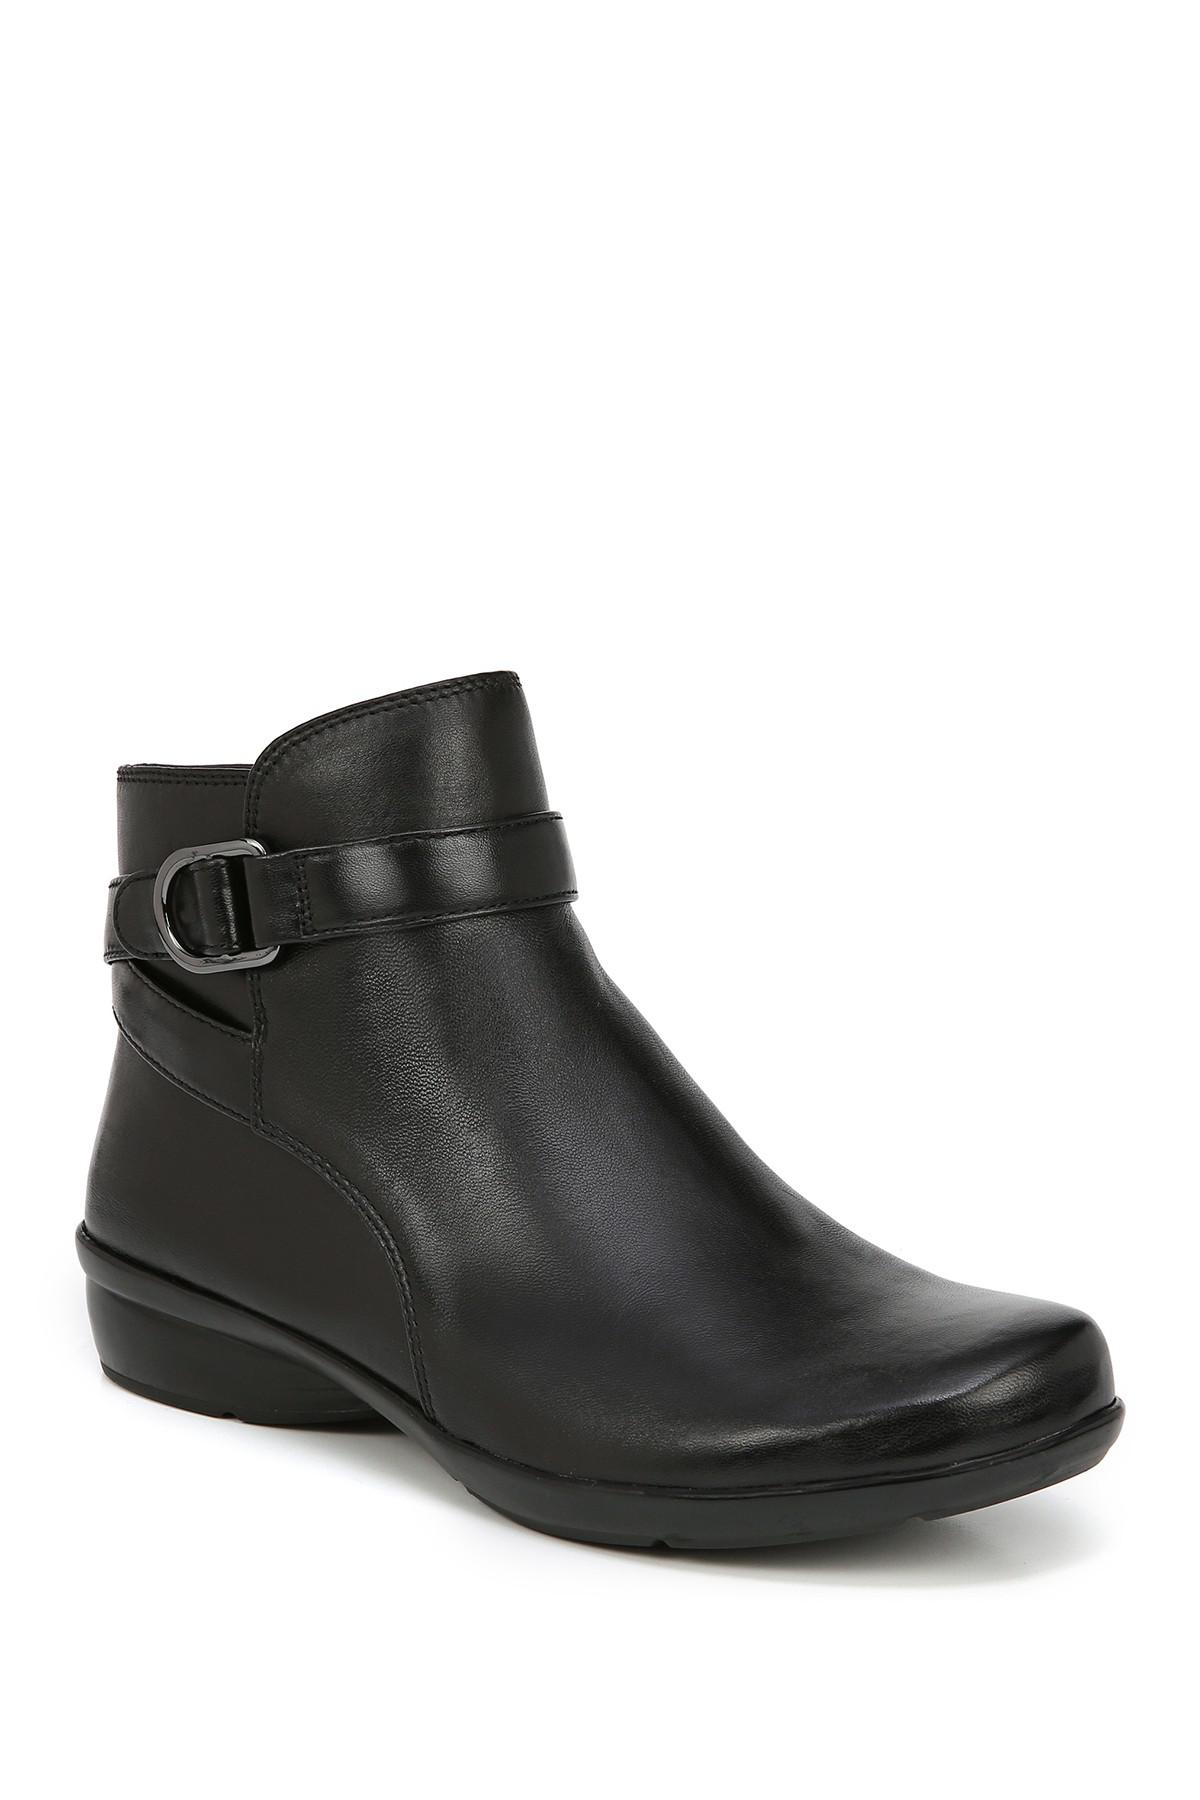 35de8ef42d4 Lyst - Naturalizer Colette Leather Bootie - Wide Width Available in ...